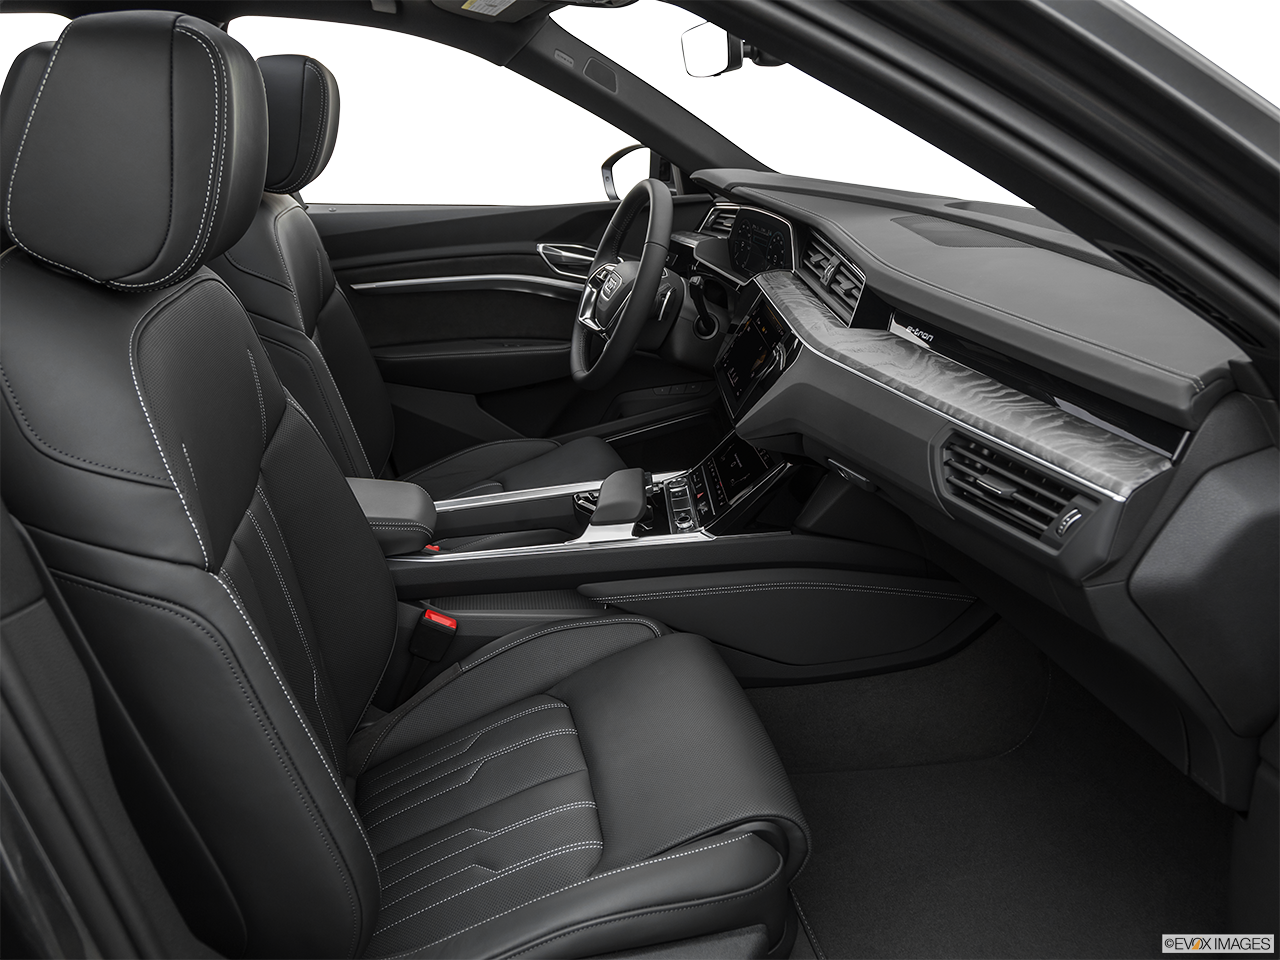 Interior view of the Audi e-tron